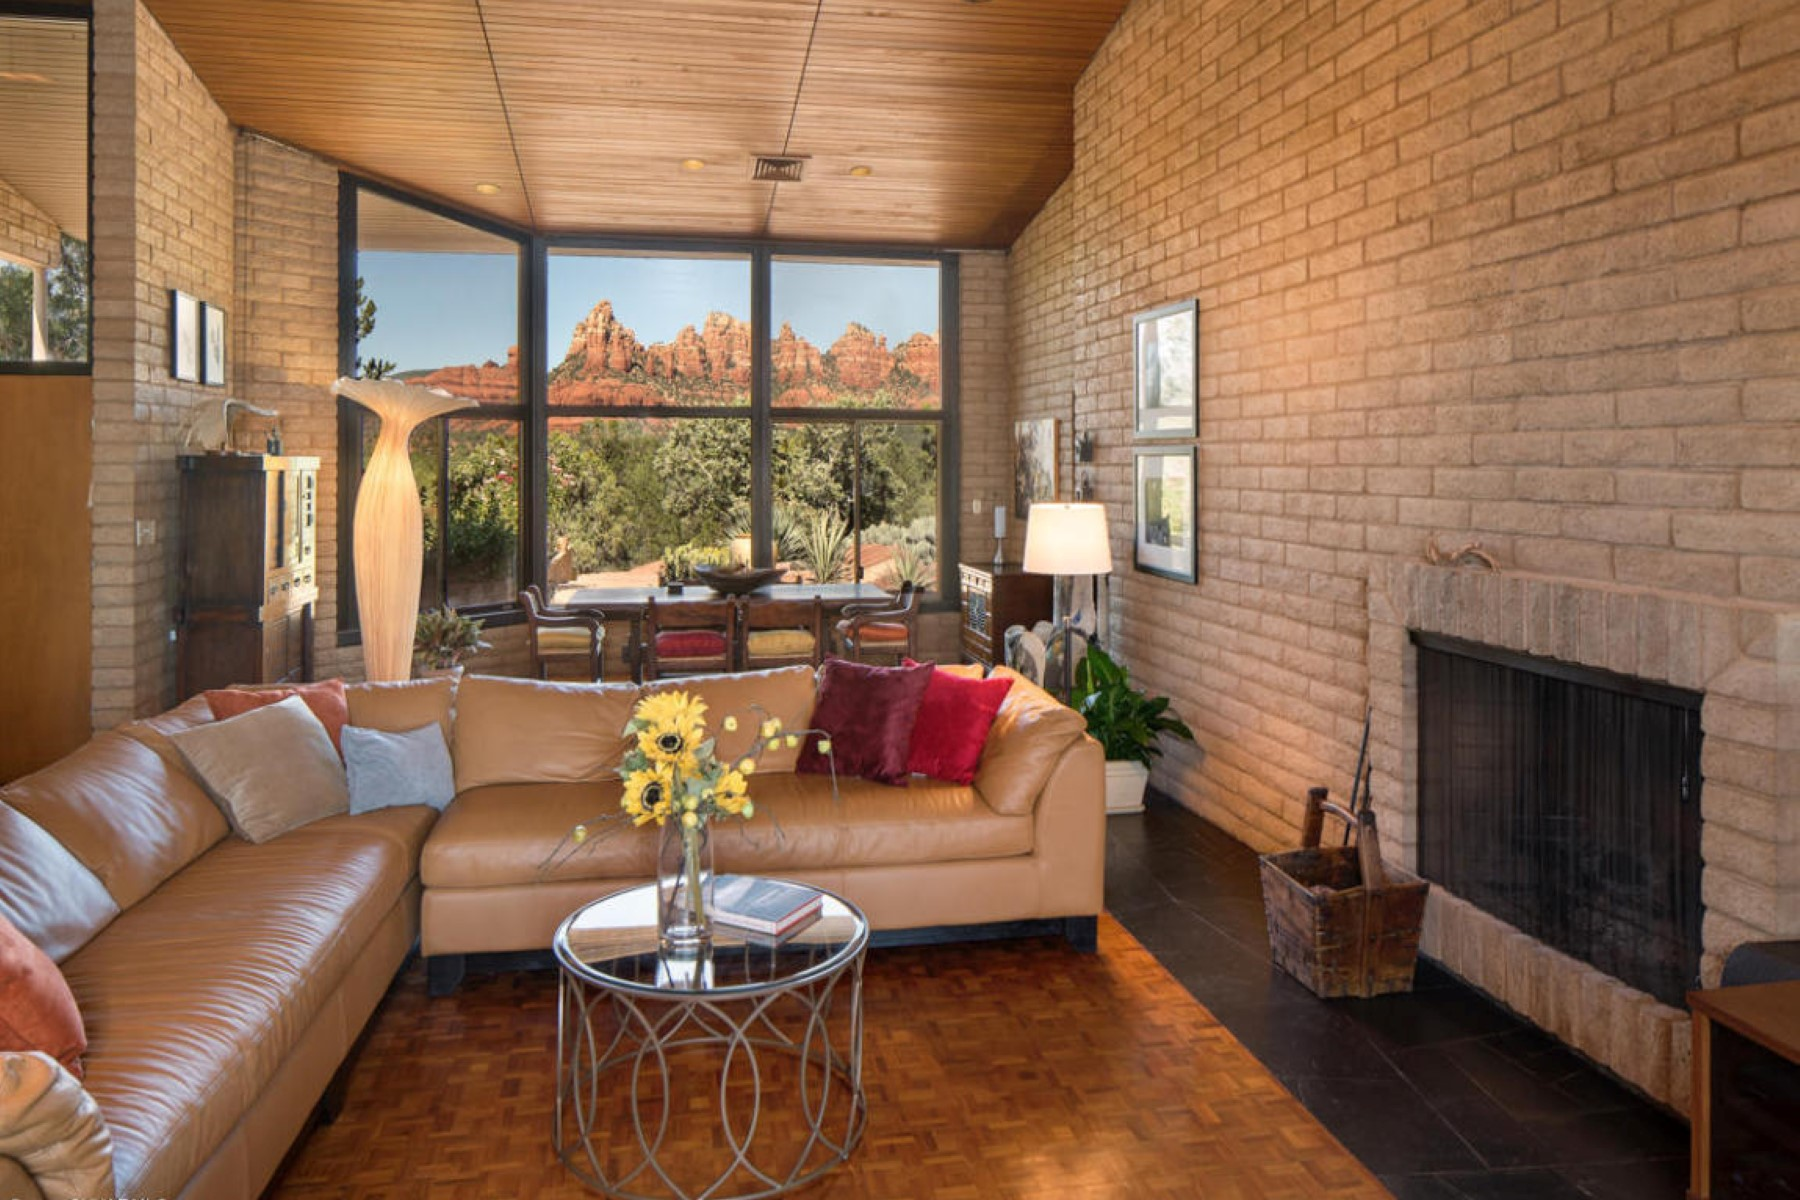 Single Family Home for Sale at Amazing Mid Century Modern beauty 324 Bowstring Drive Sedona, Arizona, 86336 United States